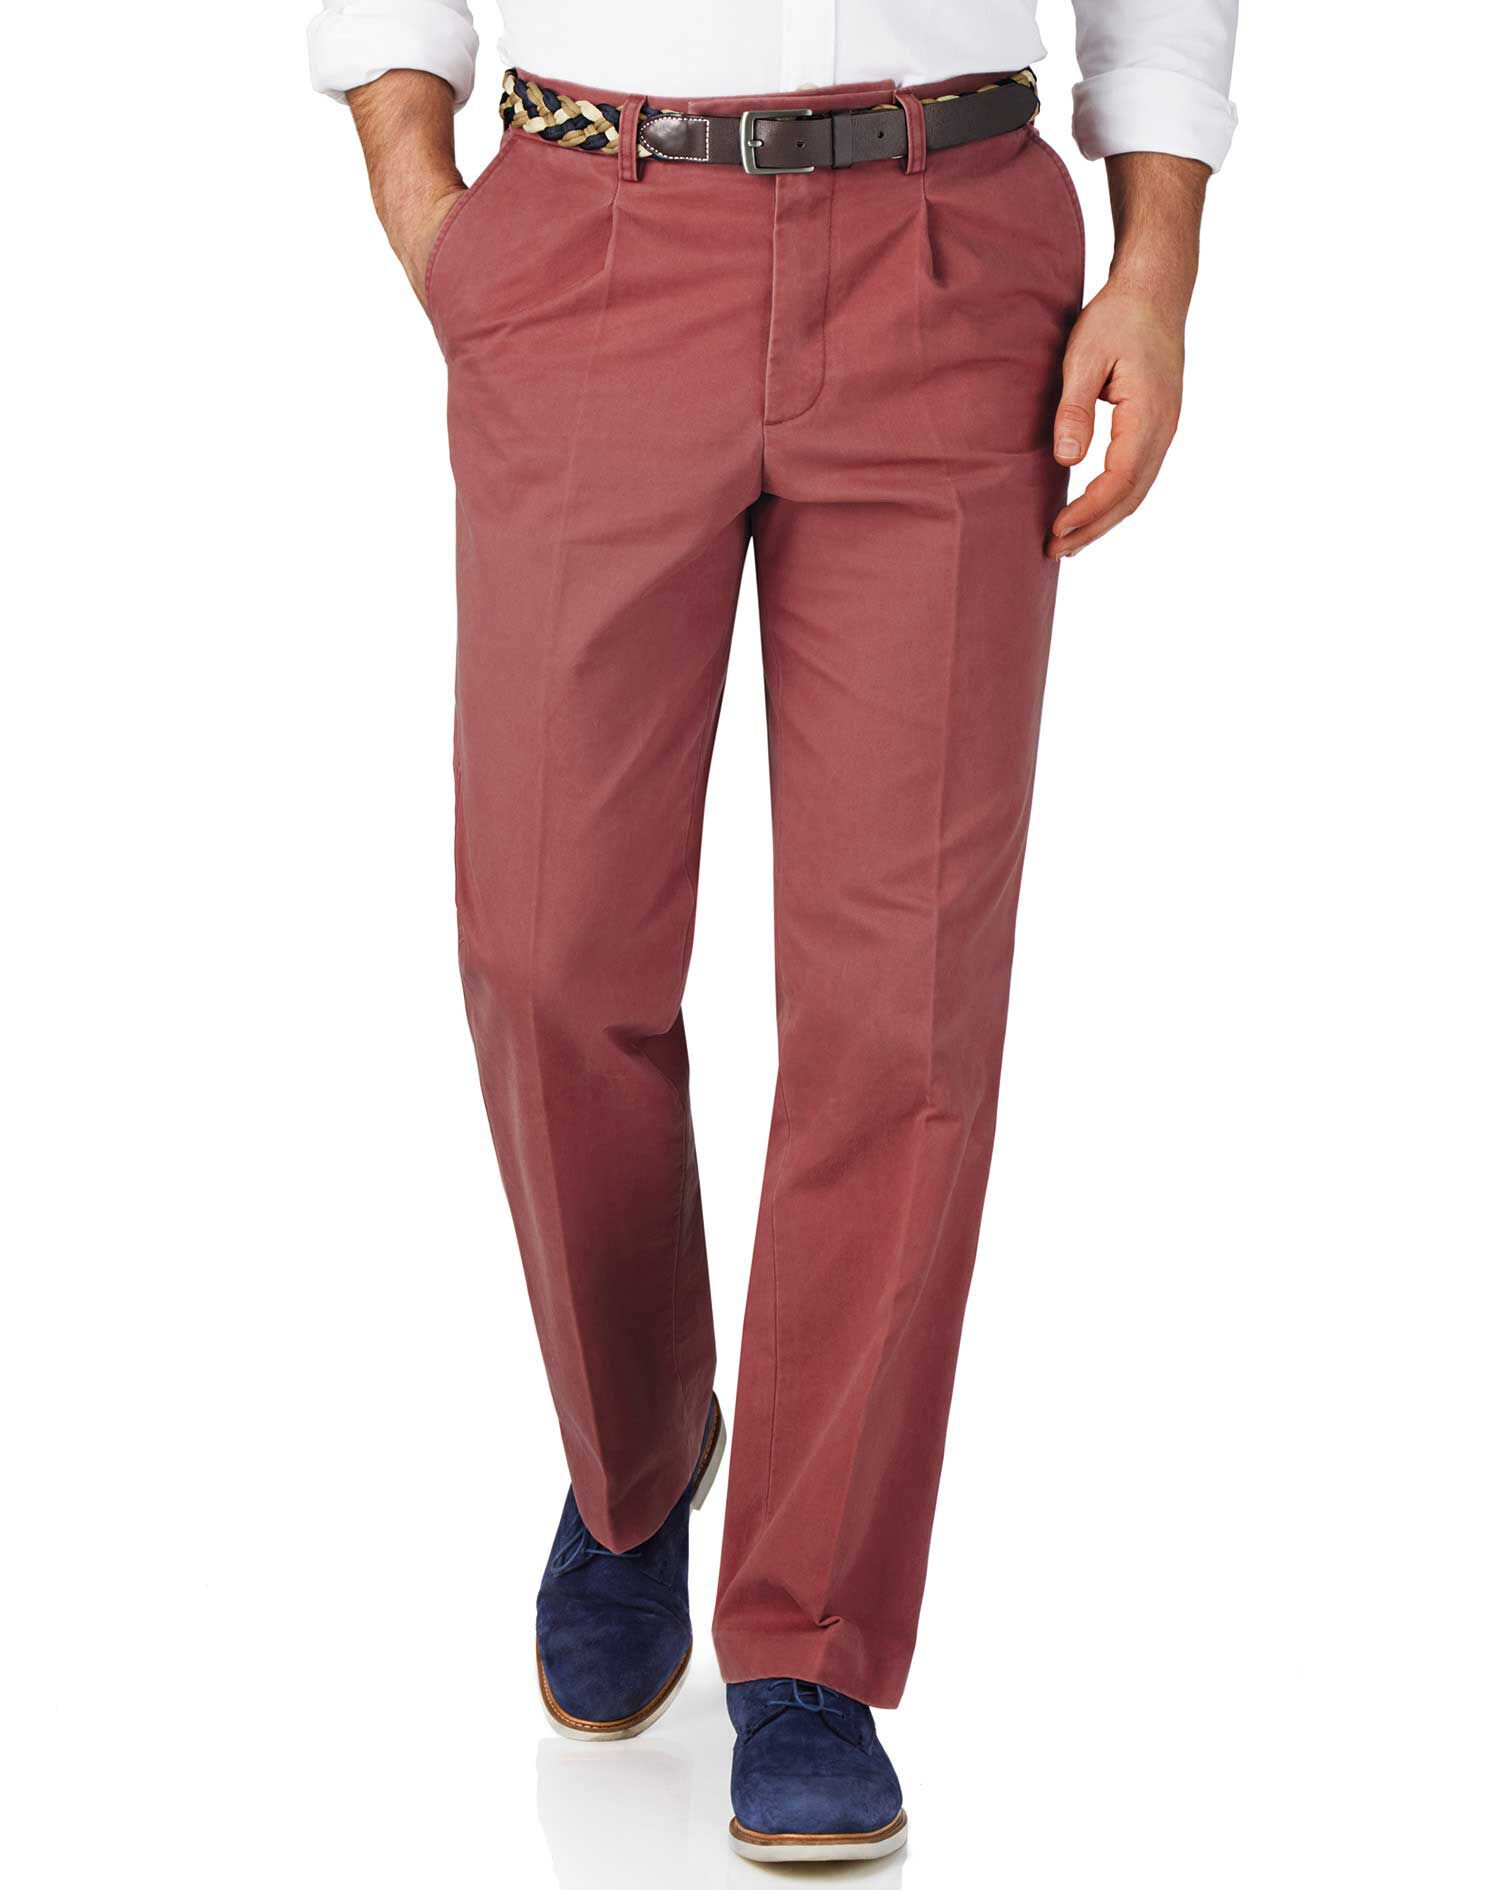 Light Red Classic Fit Single Pleat Weekend Cotton Chino Trousers Size W30 L38 by Charles Tyrwhitt